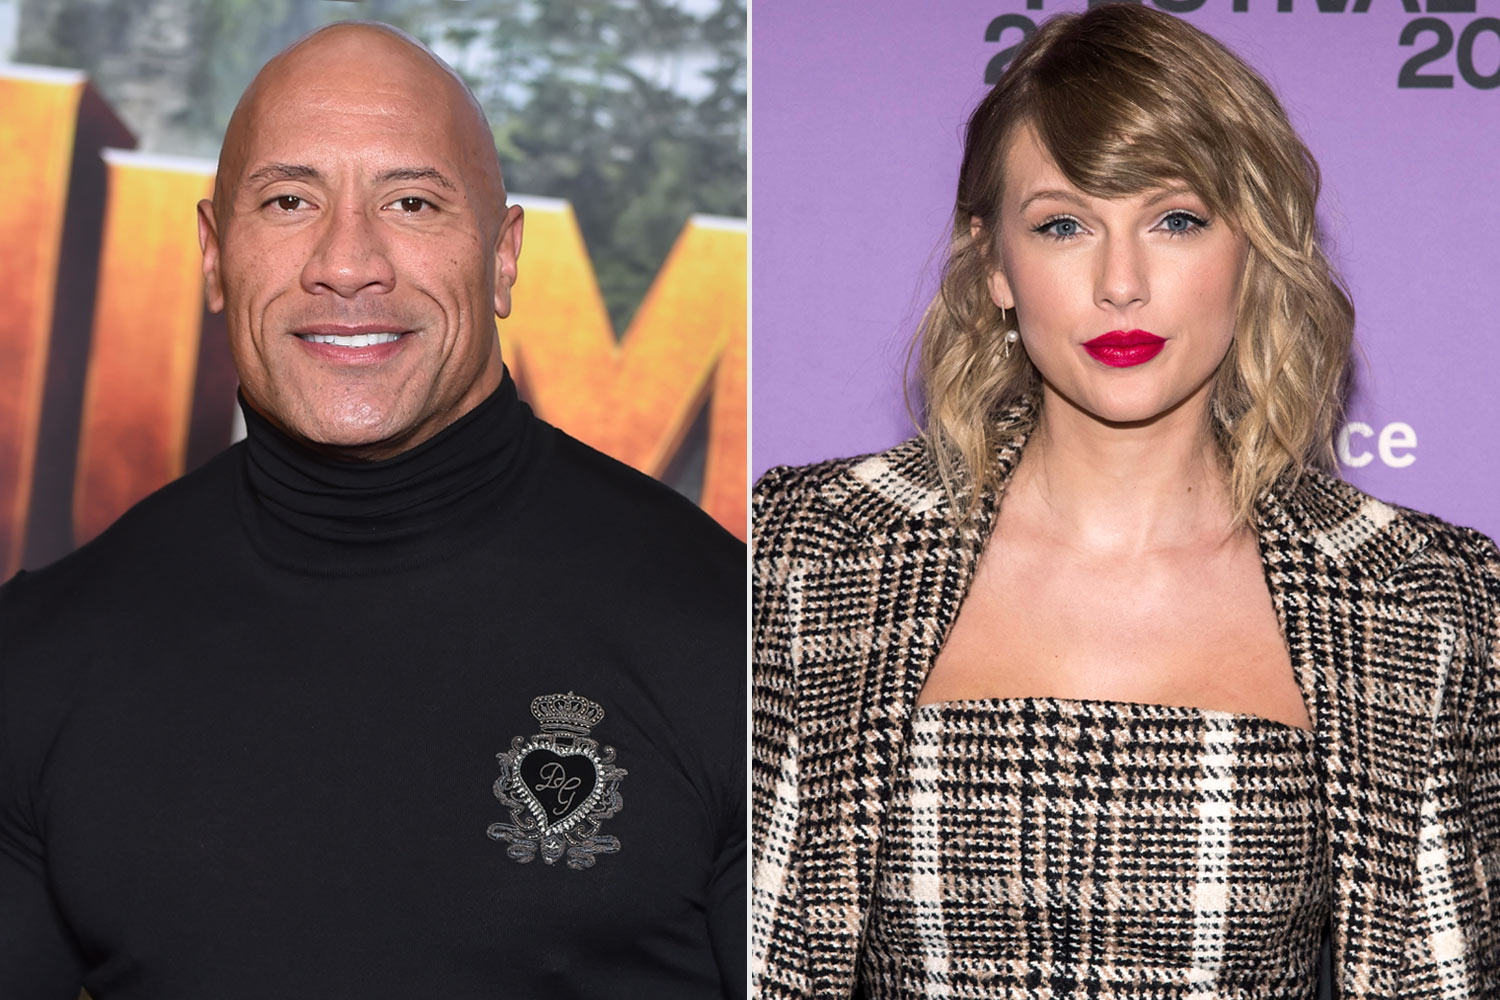 Dwayne Johnson and Taylor Swift